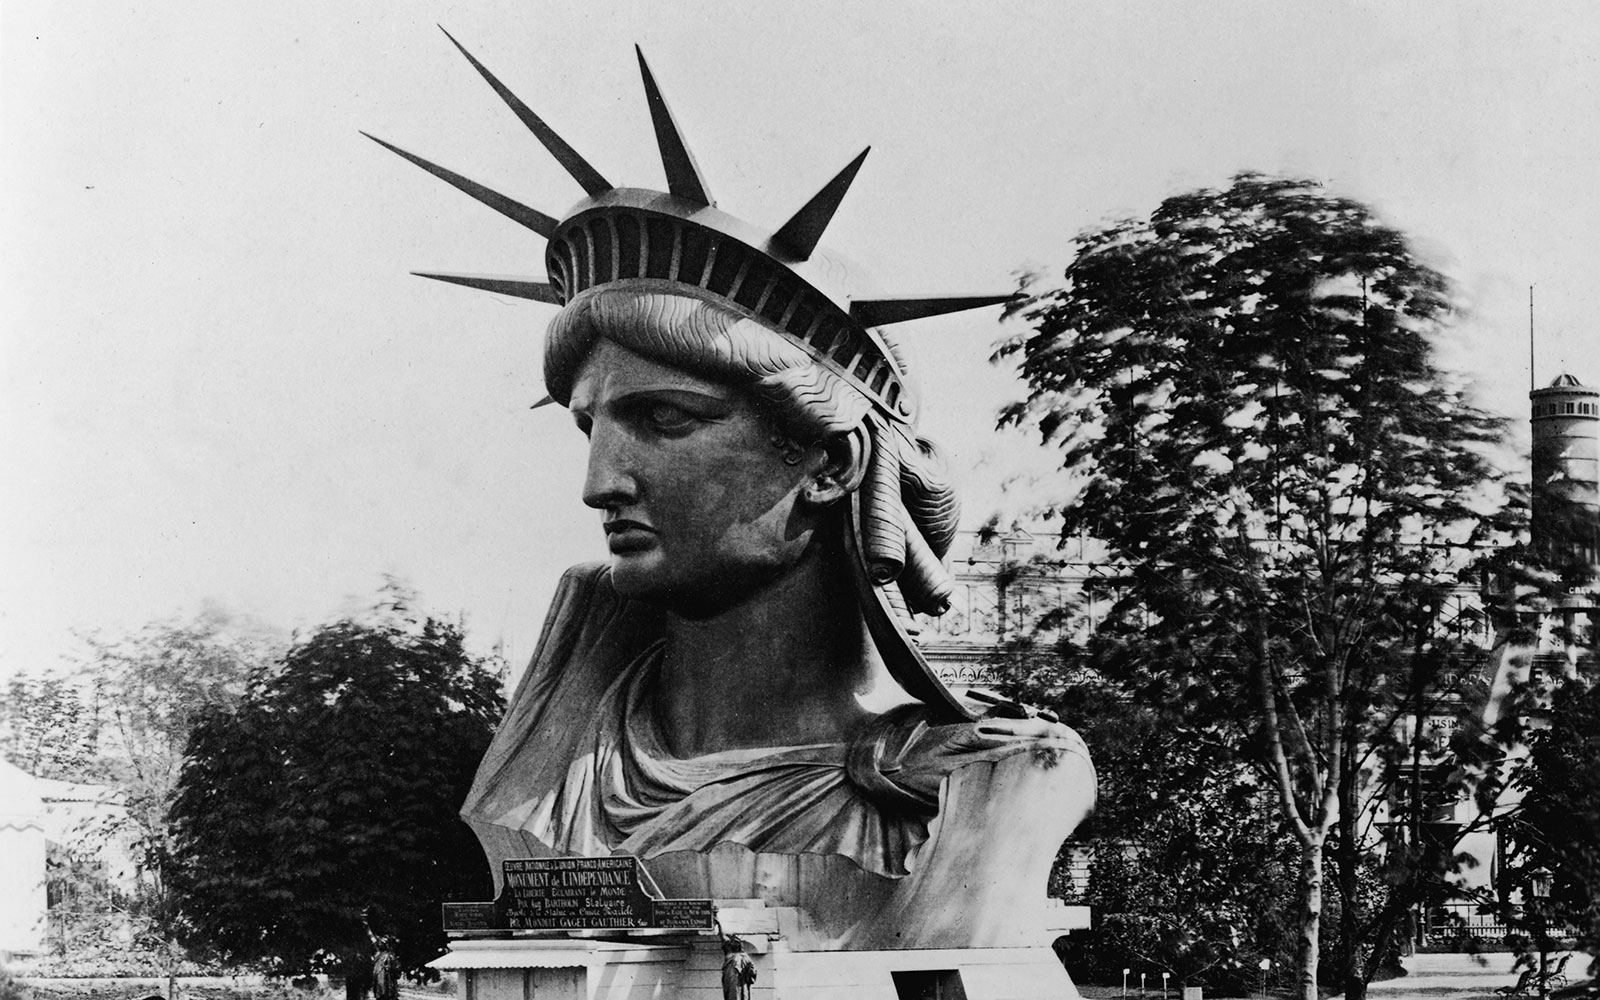 Here's What the Statue of Liberty Looked Like in the 1800s